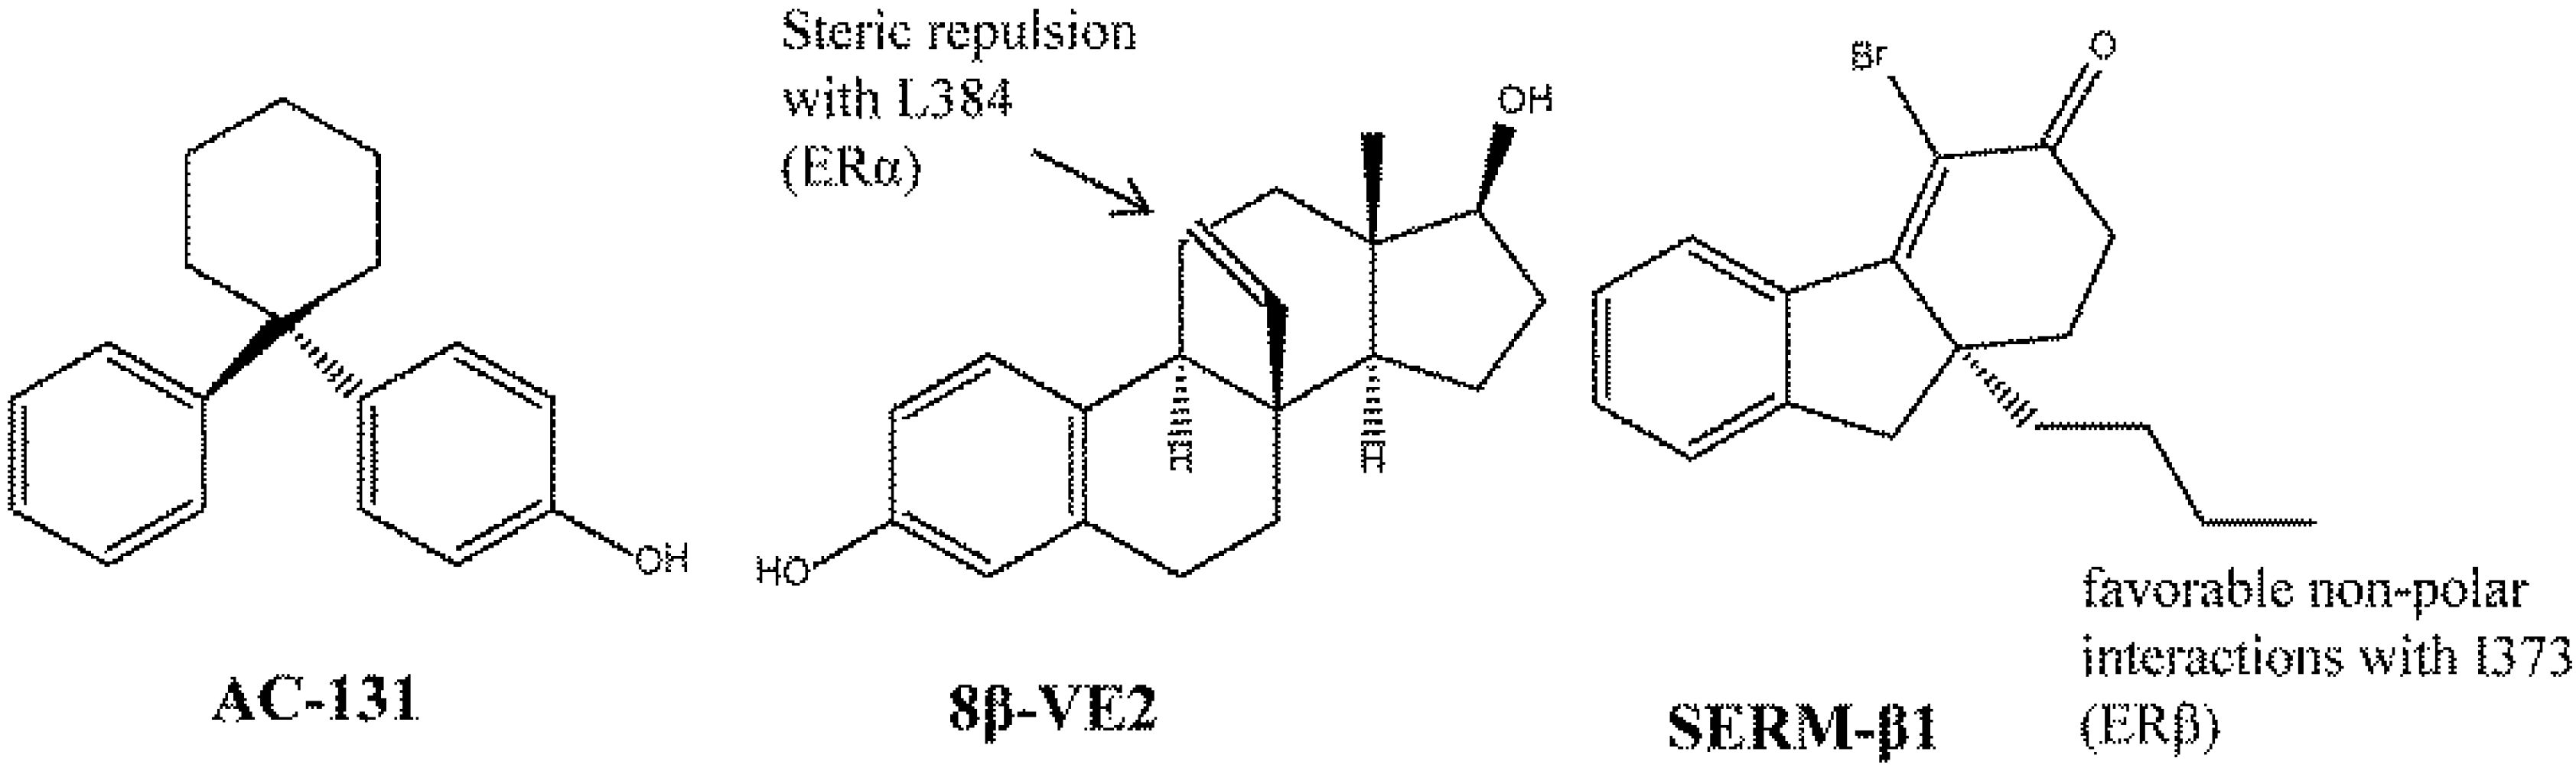 repulsions in case of a chemical compound